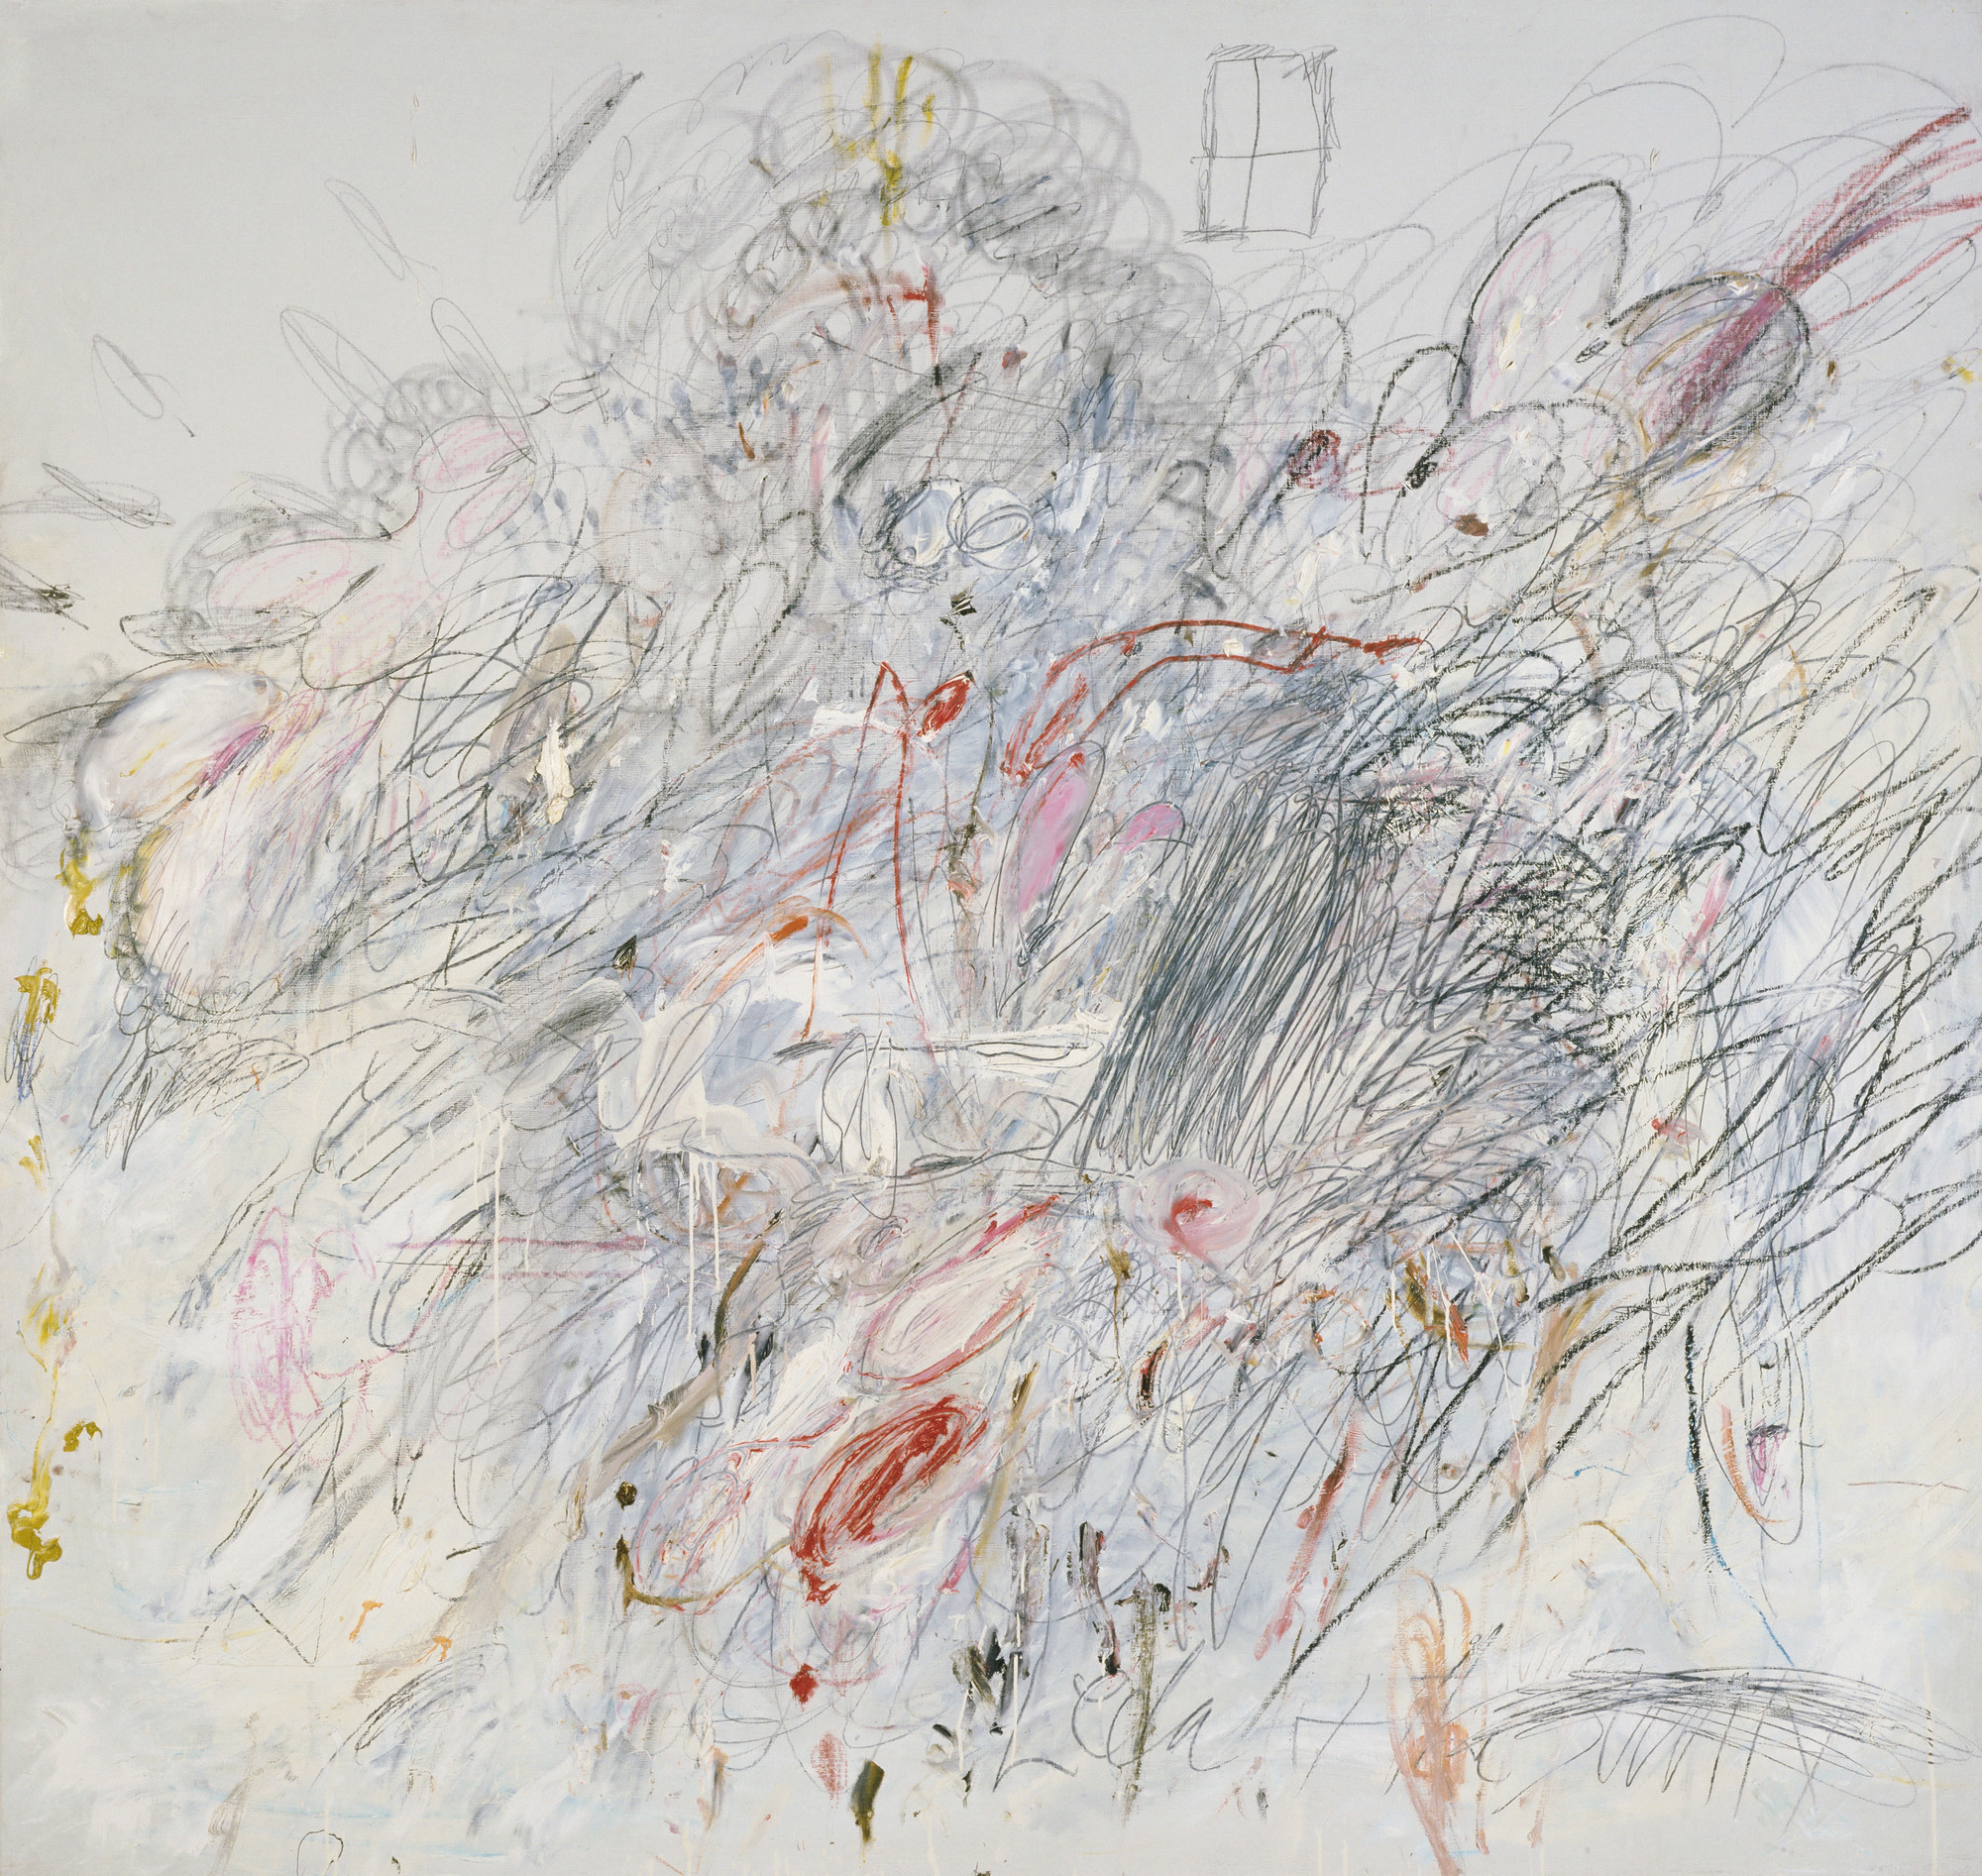 Cy Twombly. Leda and the Swan. Rome, 1962. Oil, pencil, and crayon on canvas, 6′ 3″ × 6′ 6 3/4″ (190.5 × 200 cm). Acquired through the Lillie P. Bliss Bequest and The Sidney and Harriet Janis Collection (both by exchange). © 2016 Cy Twombly Foundation